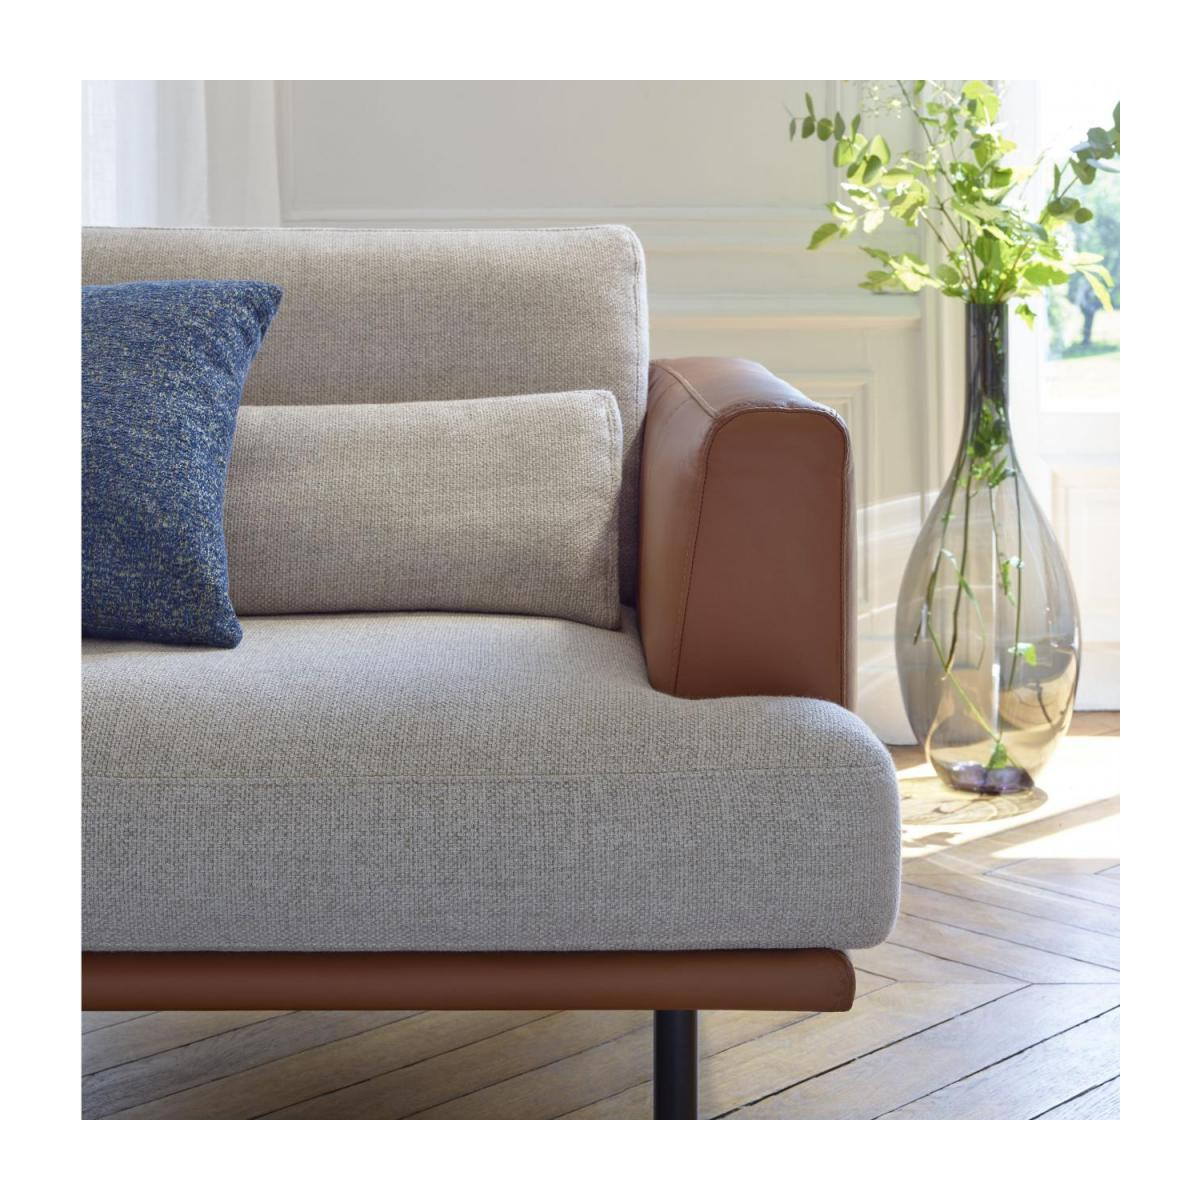 3 seater sofa in Bellagio fabric, organic green with base and armrests in brown leather n°3